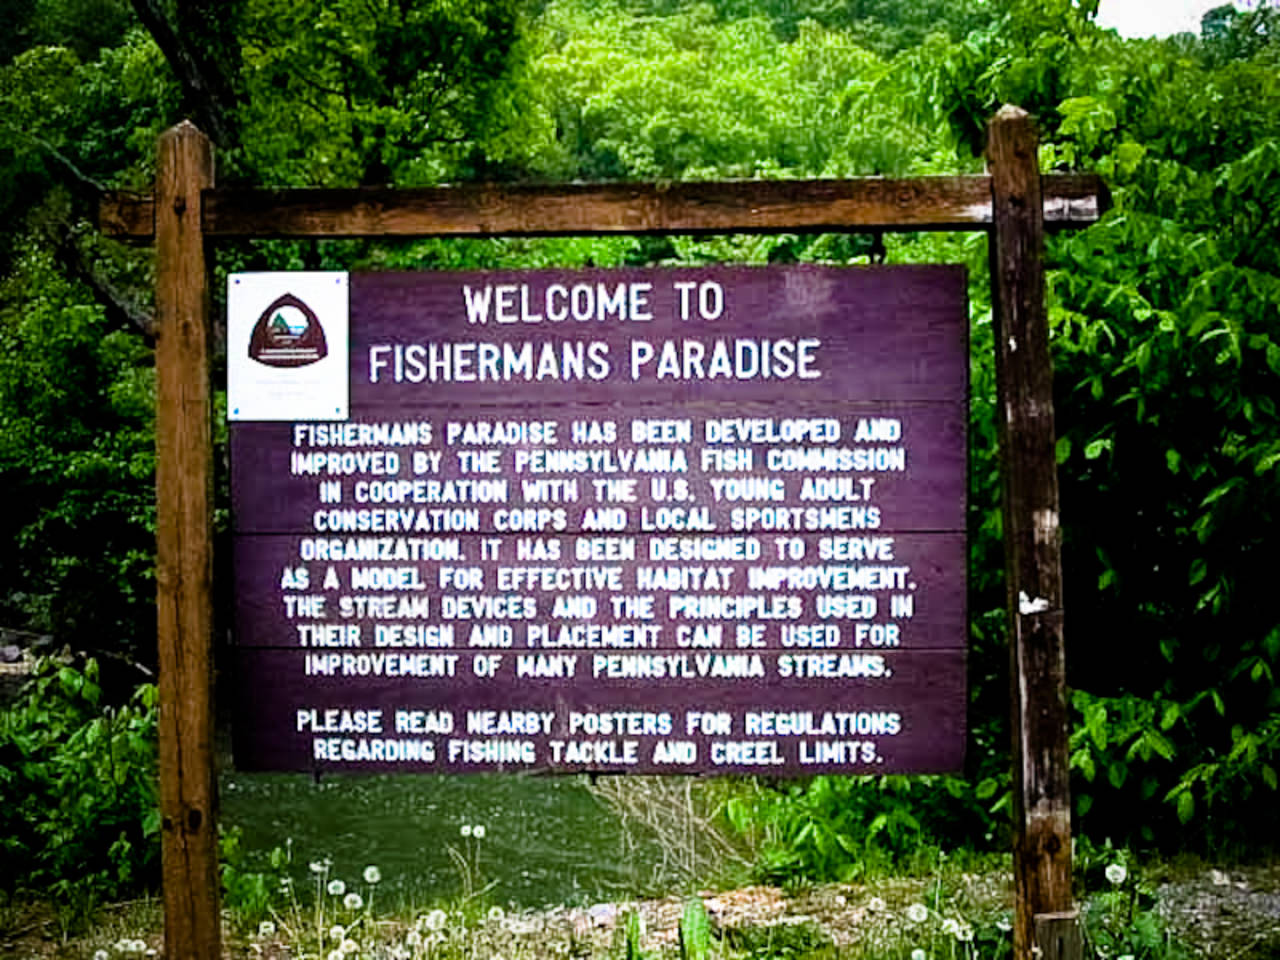 Fisherman's Paradise on Spring Creek in Pennsylvania